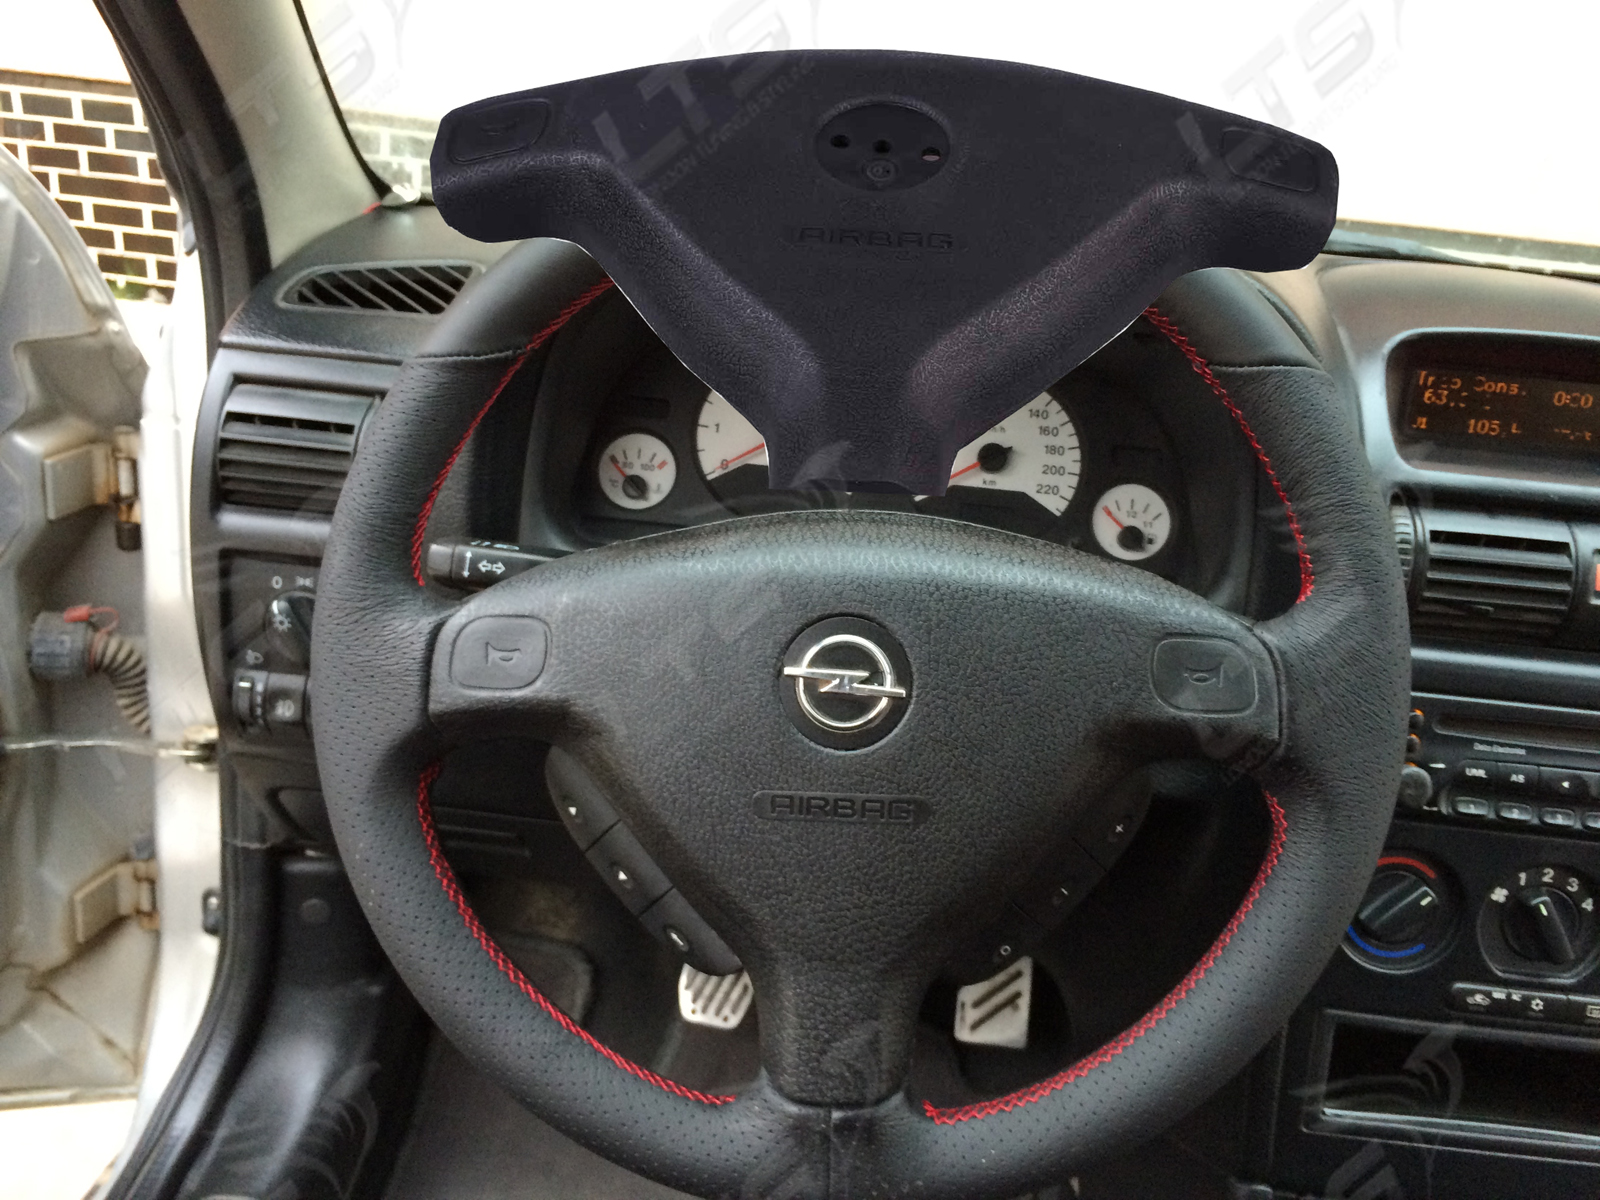 vauxhall opel astra g zafira a steering wheel airbag cover. Black Bedroom Furniture Sets. Home Design Ideas